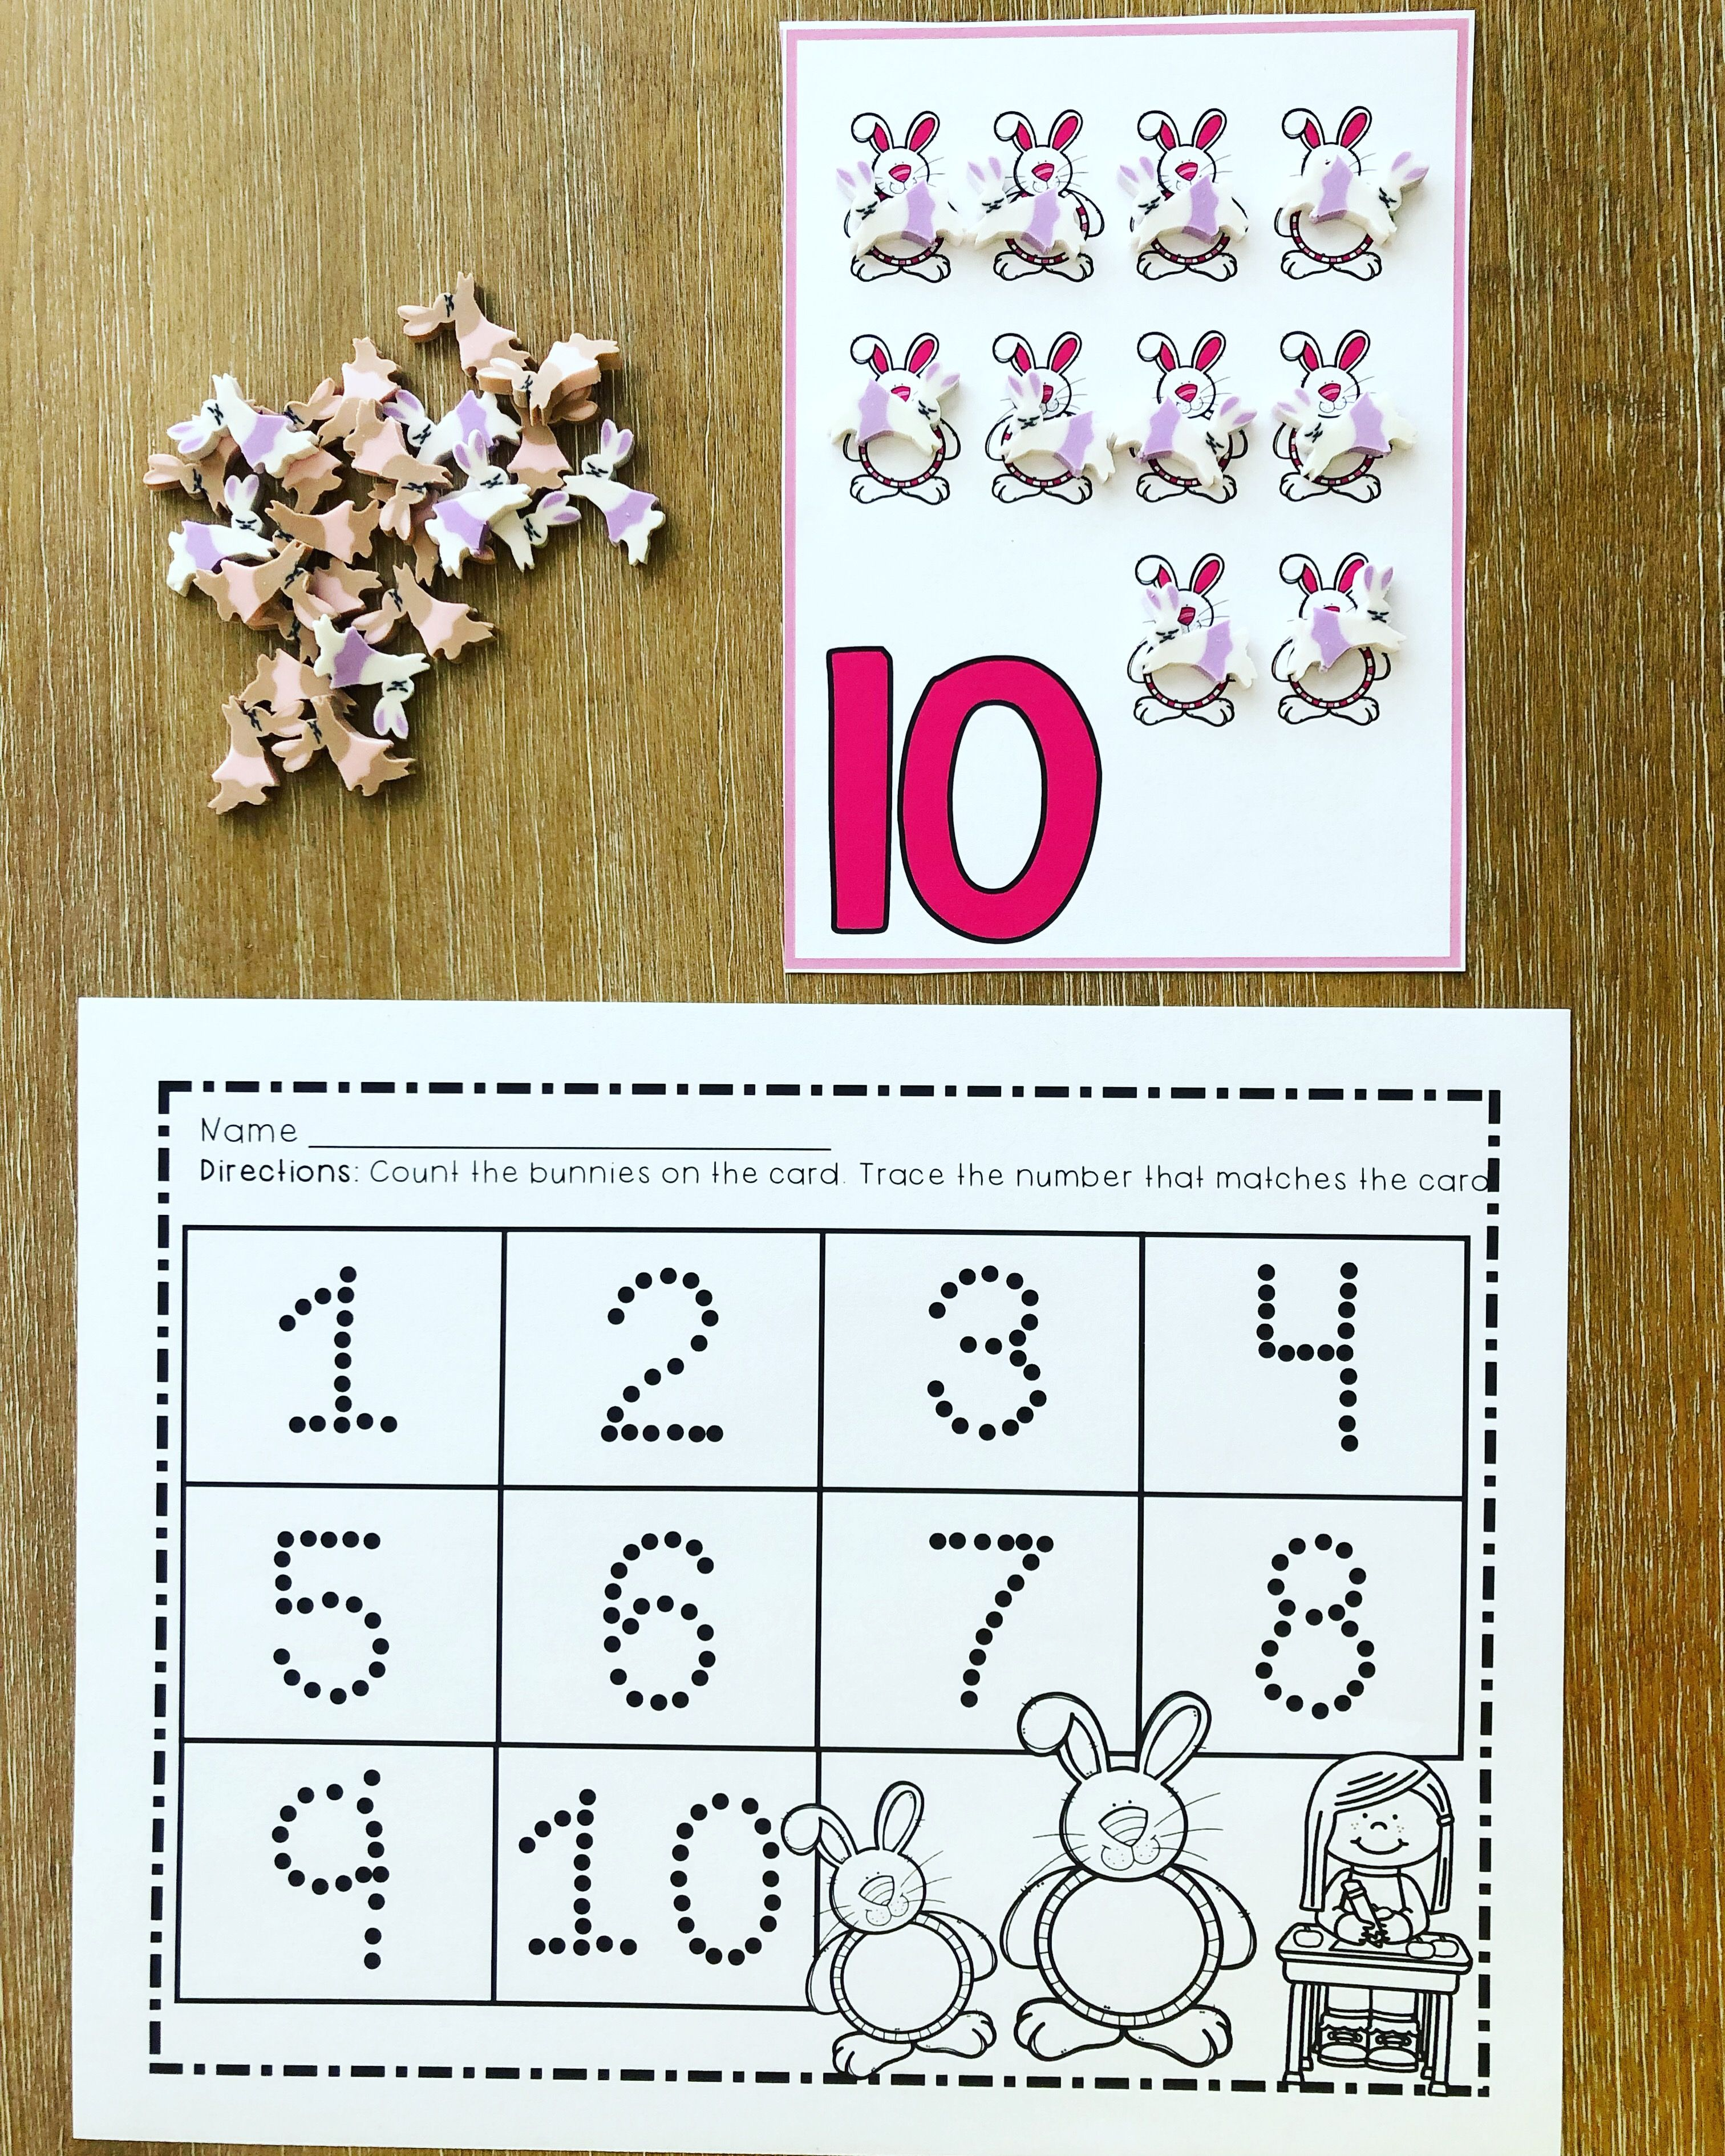 One To One Correspondence Counting With Counters April